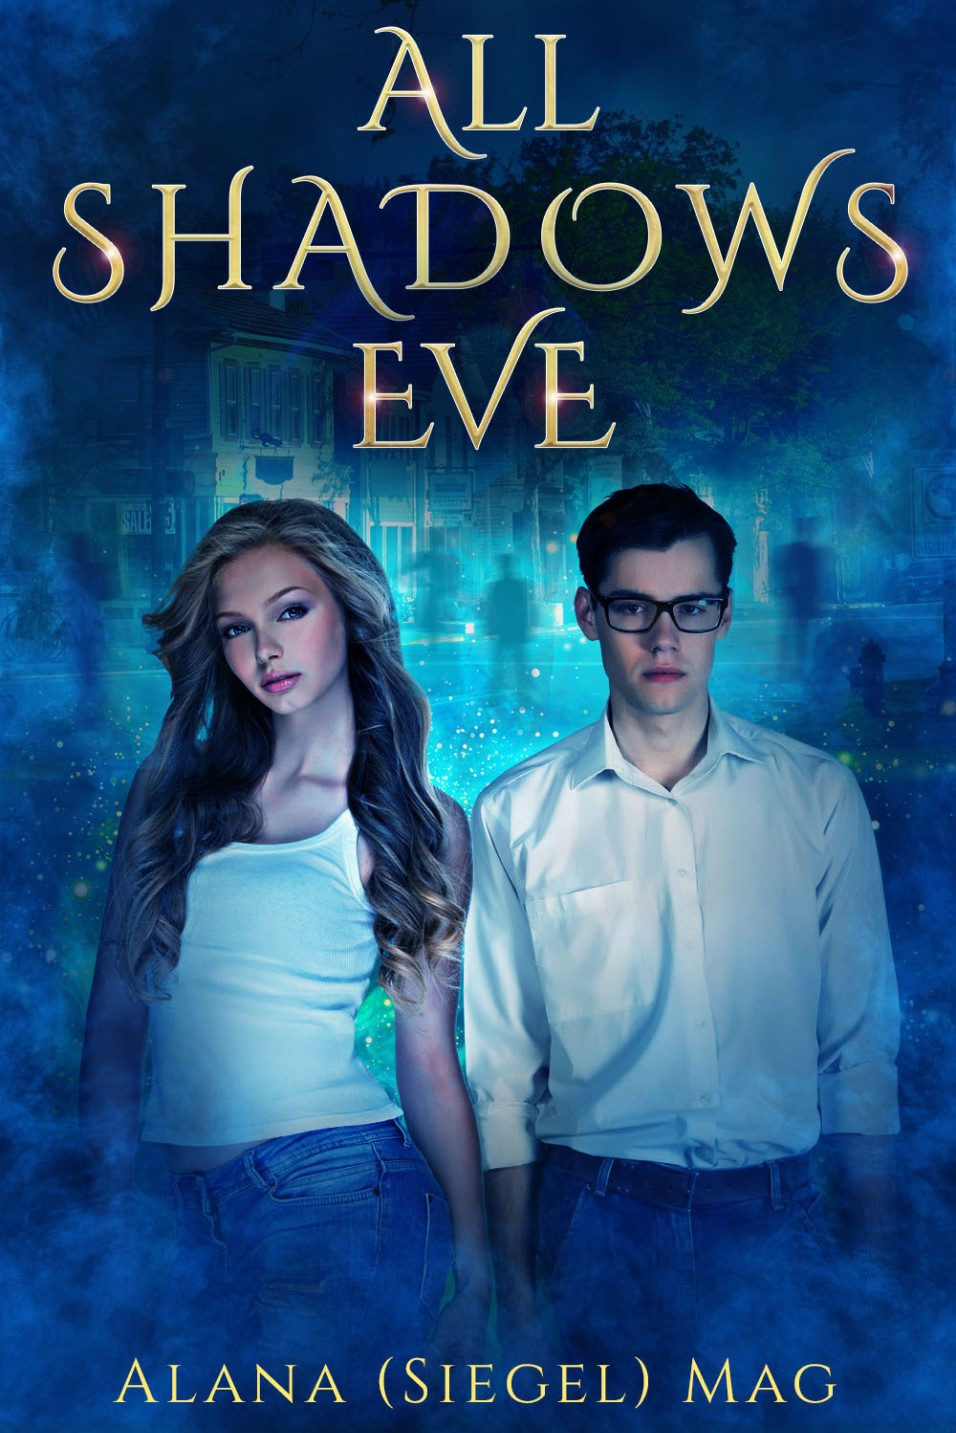 All Shadows Eve (The Parallel Universe Libro 1) – Alana Siegel Mag